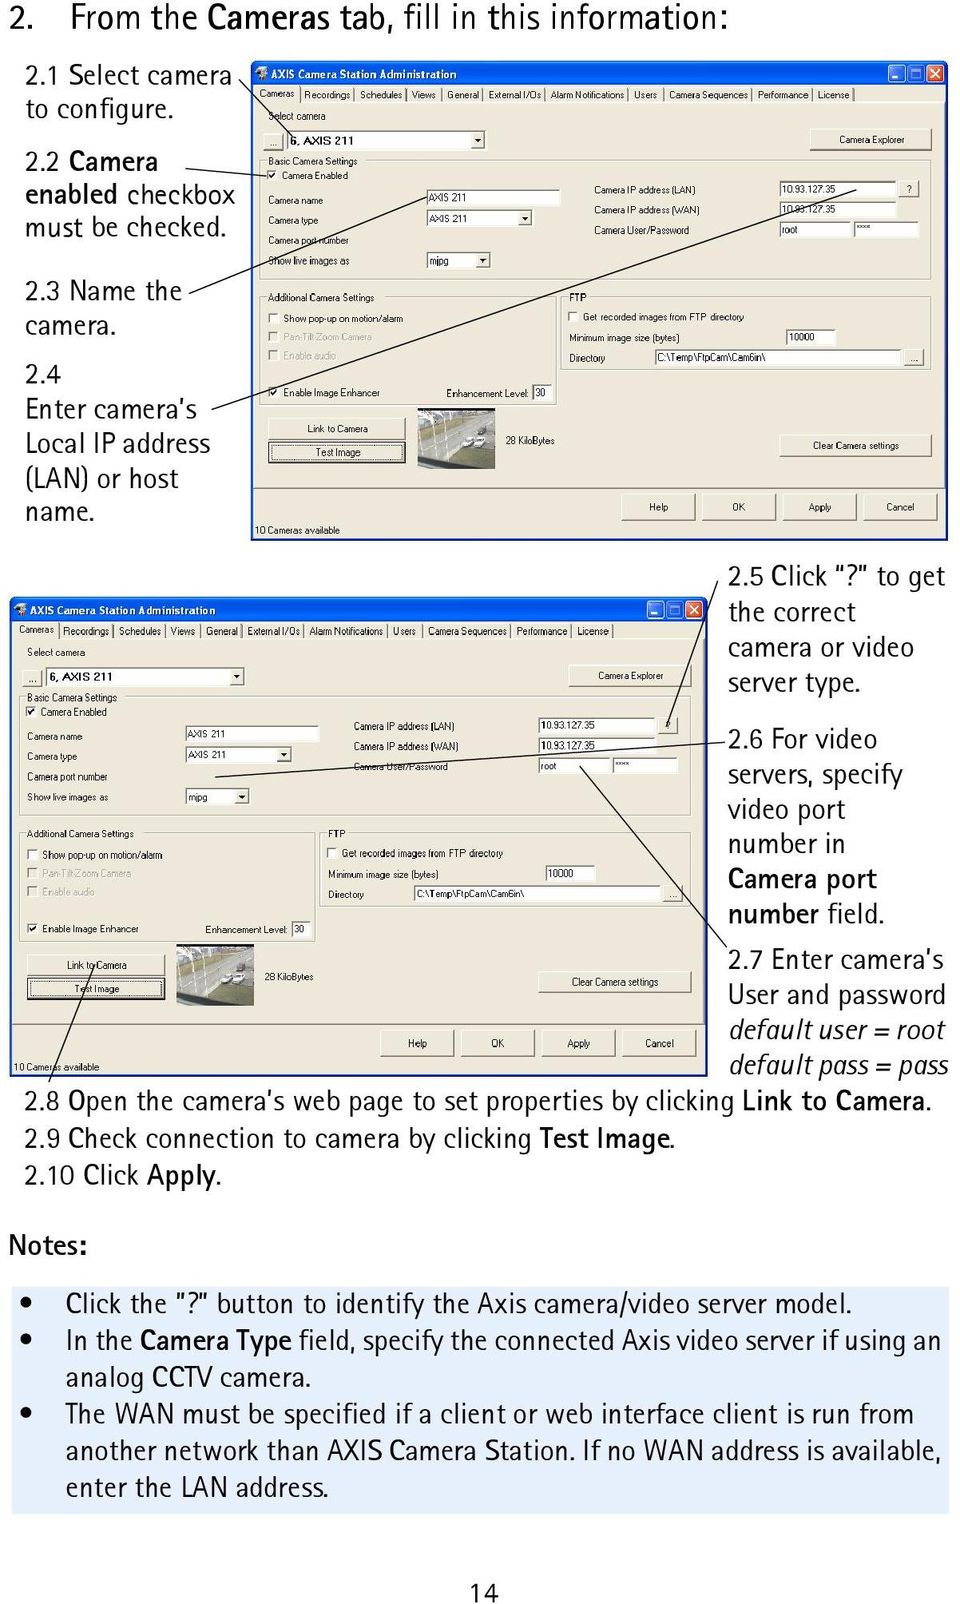 8 Open the camera s web page to set properties by clicking Link to Camera. 2.9 Check connection to camera by clicking Test Image. 2.10 Click Apply. Click the?